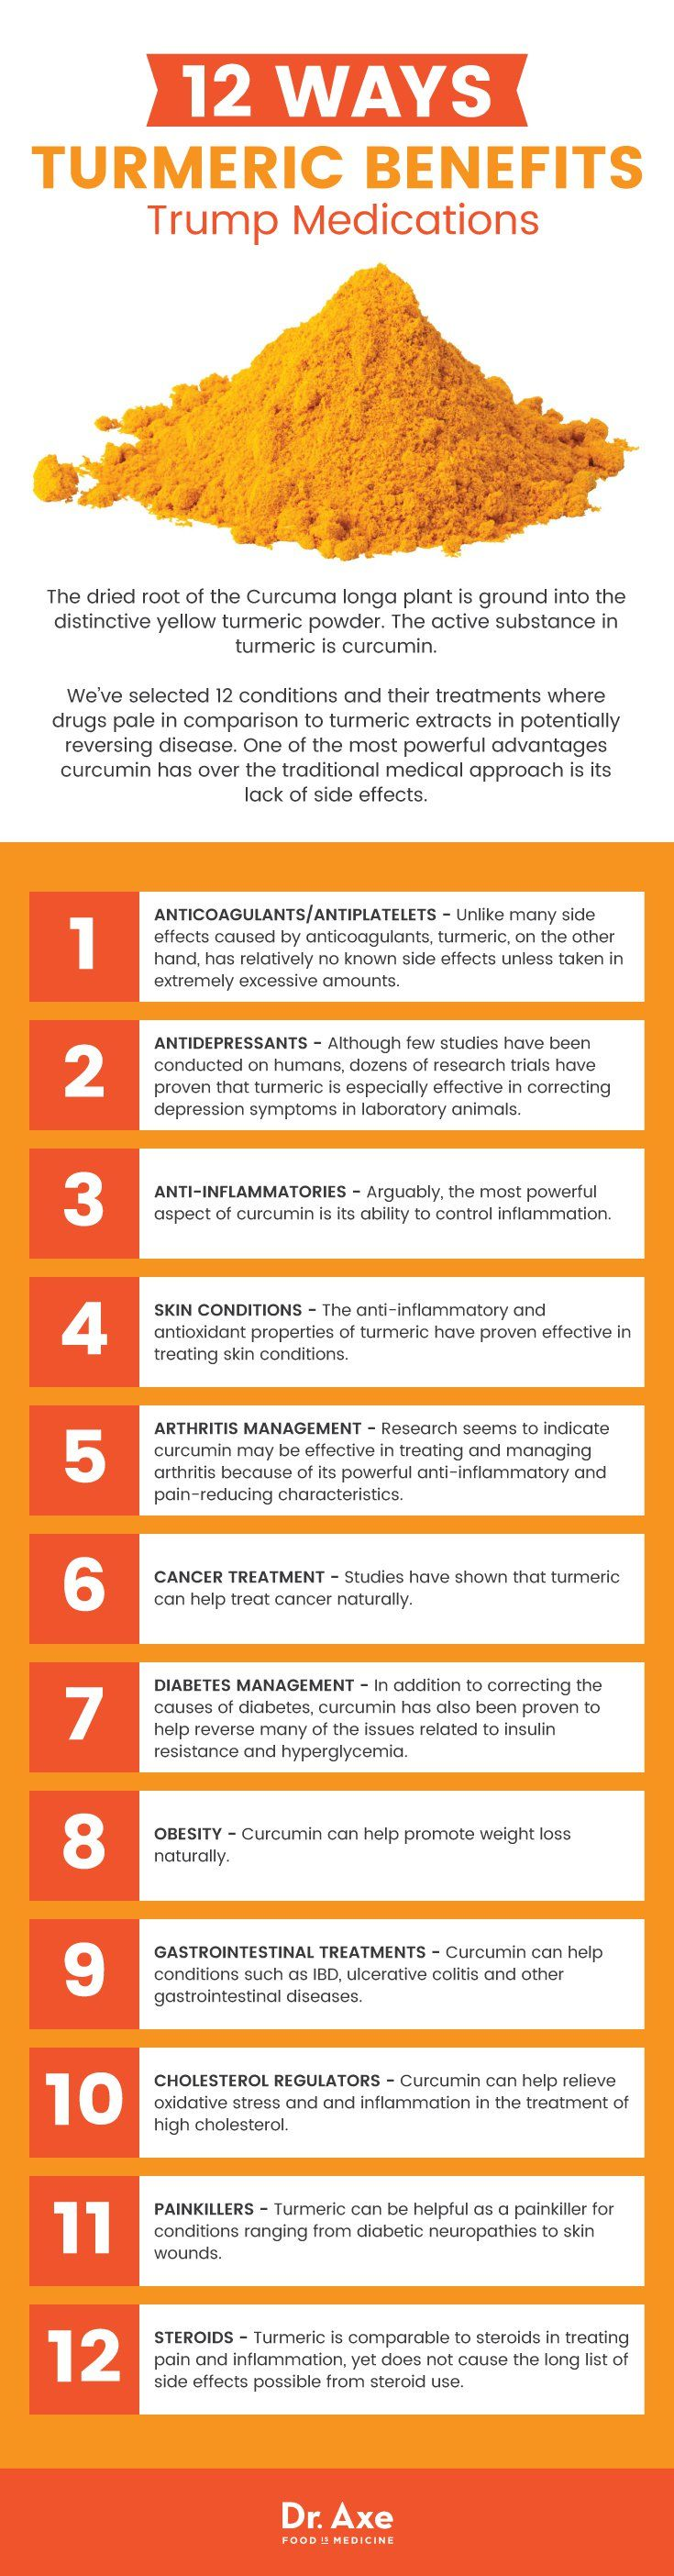 12 turmeric benefits - Dr. Axe http://www.draxe.com #health #holistic #natural